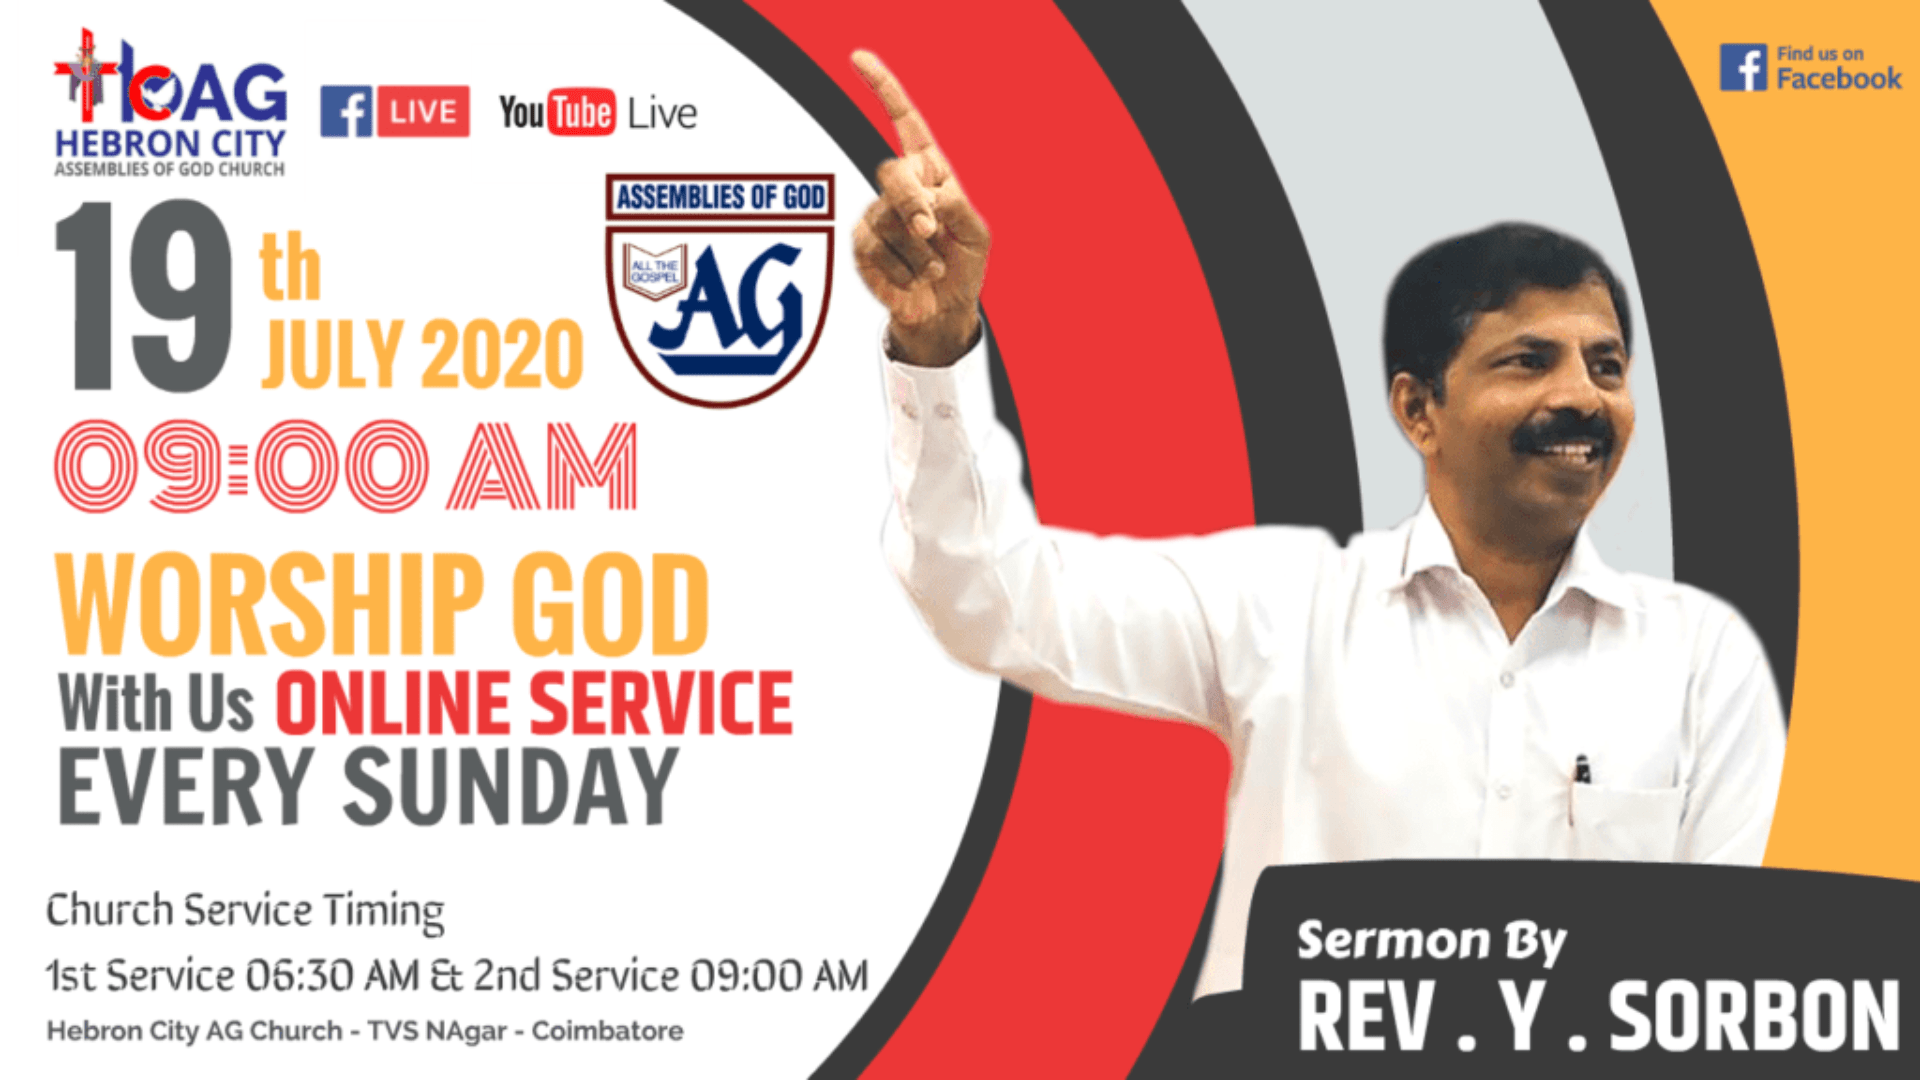 LIVE: 19th JULY 2020 ONLINE SUNDAY SERVICE - SERMON BY REV. Y. SORBON - Hebron City AG Church